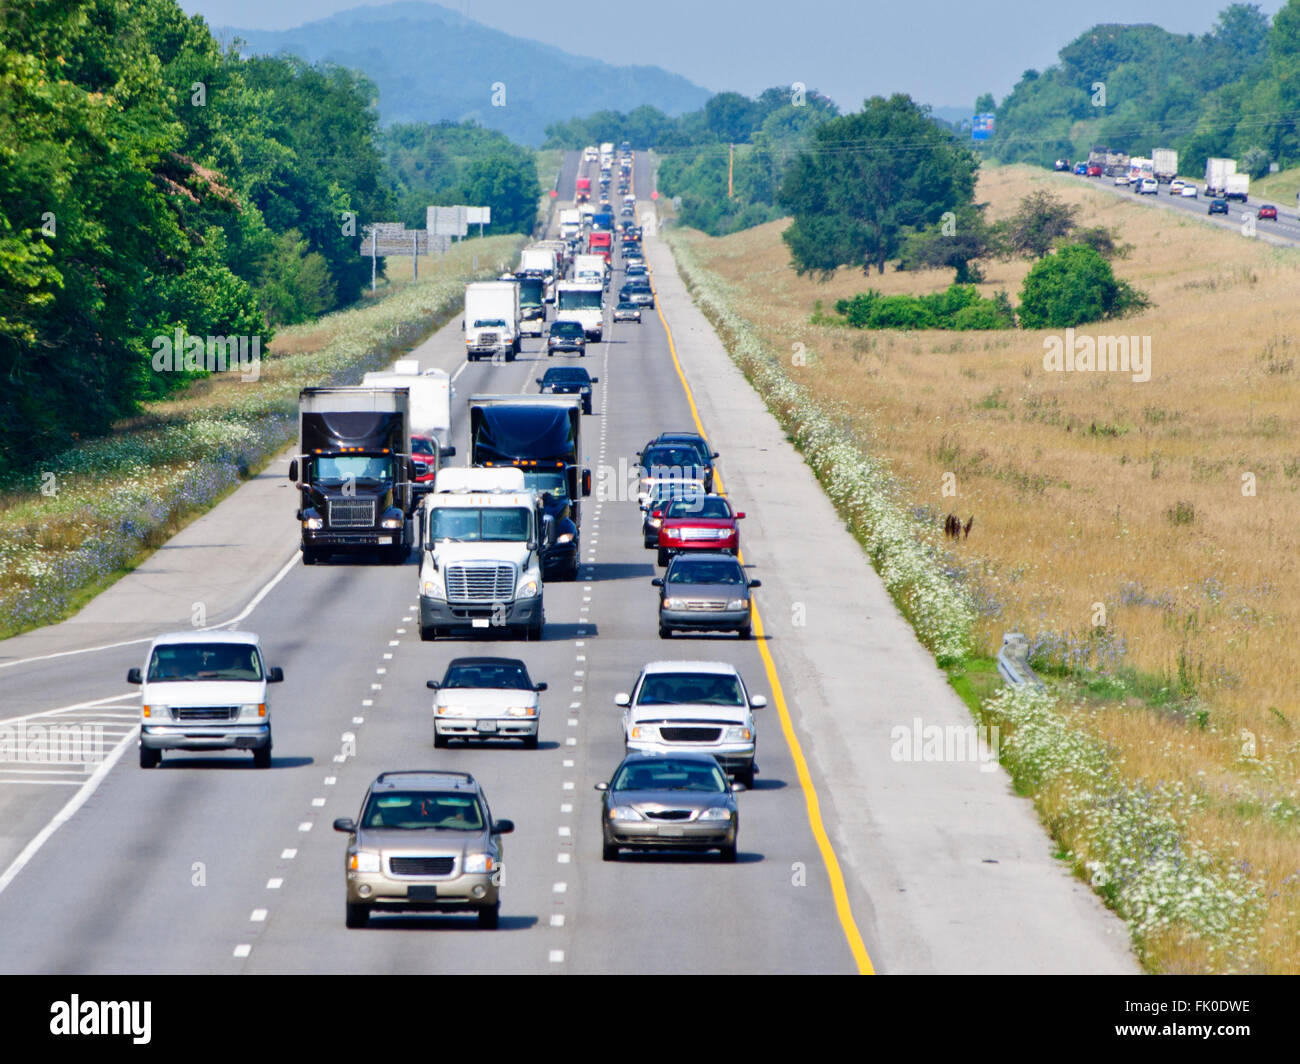 Heavy Highway Traffic On Hot Summer Day - Stock Image